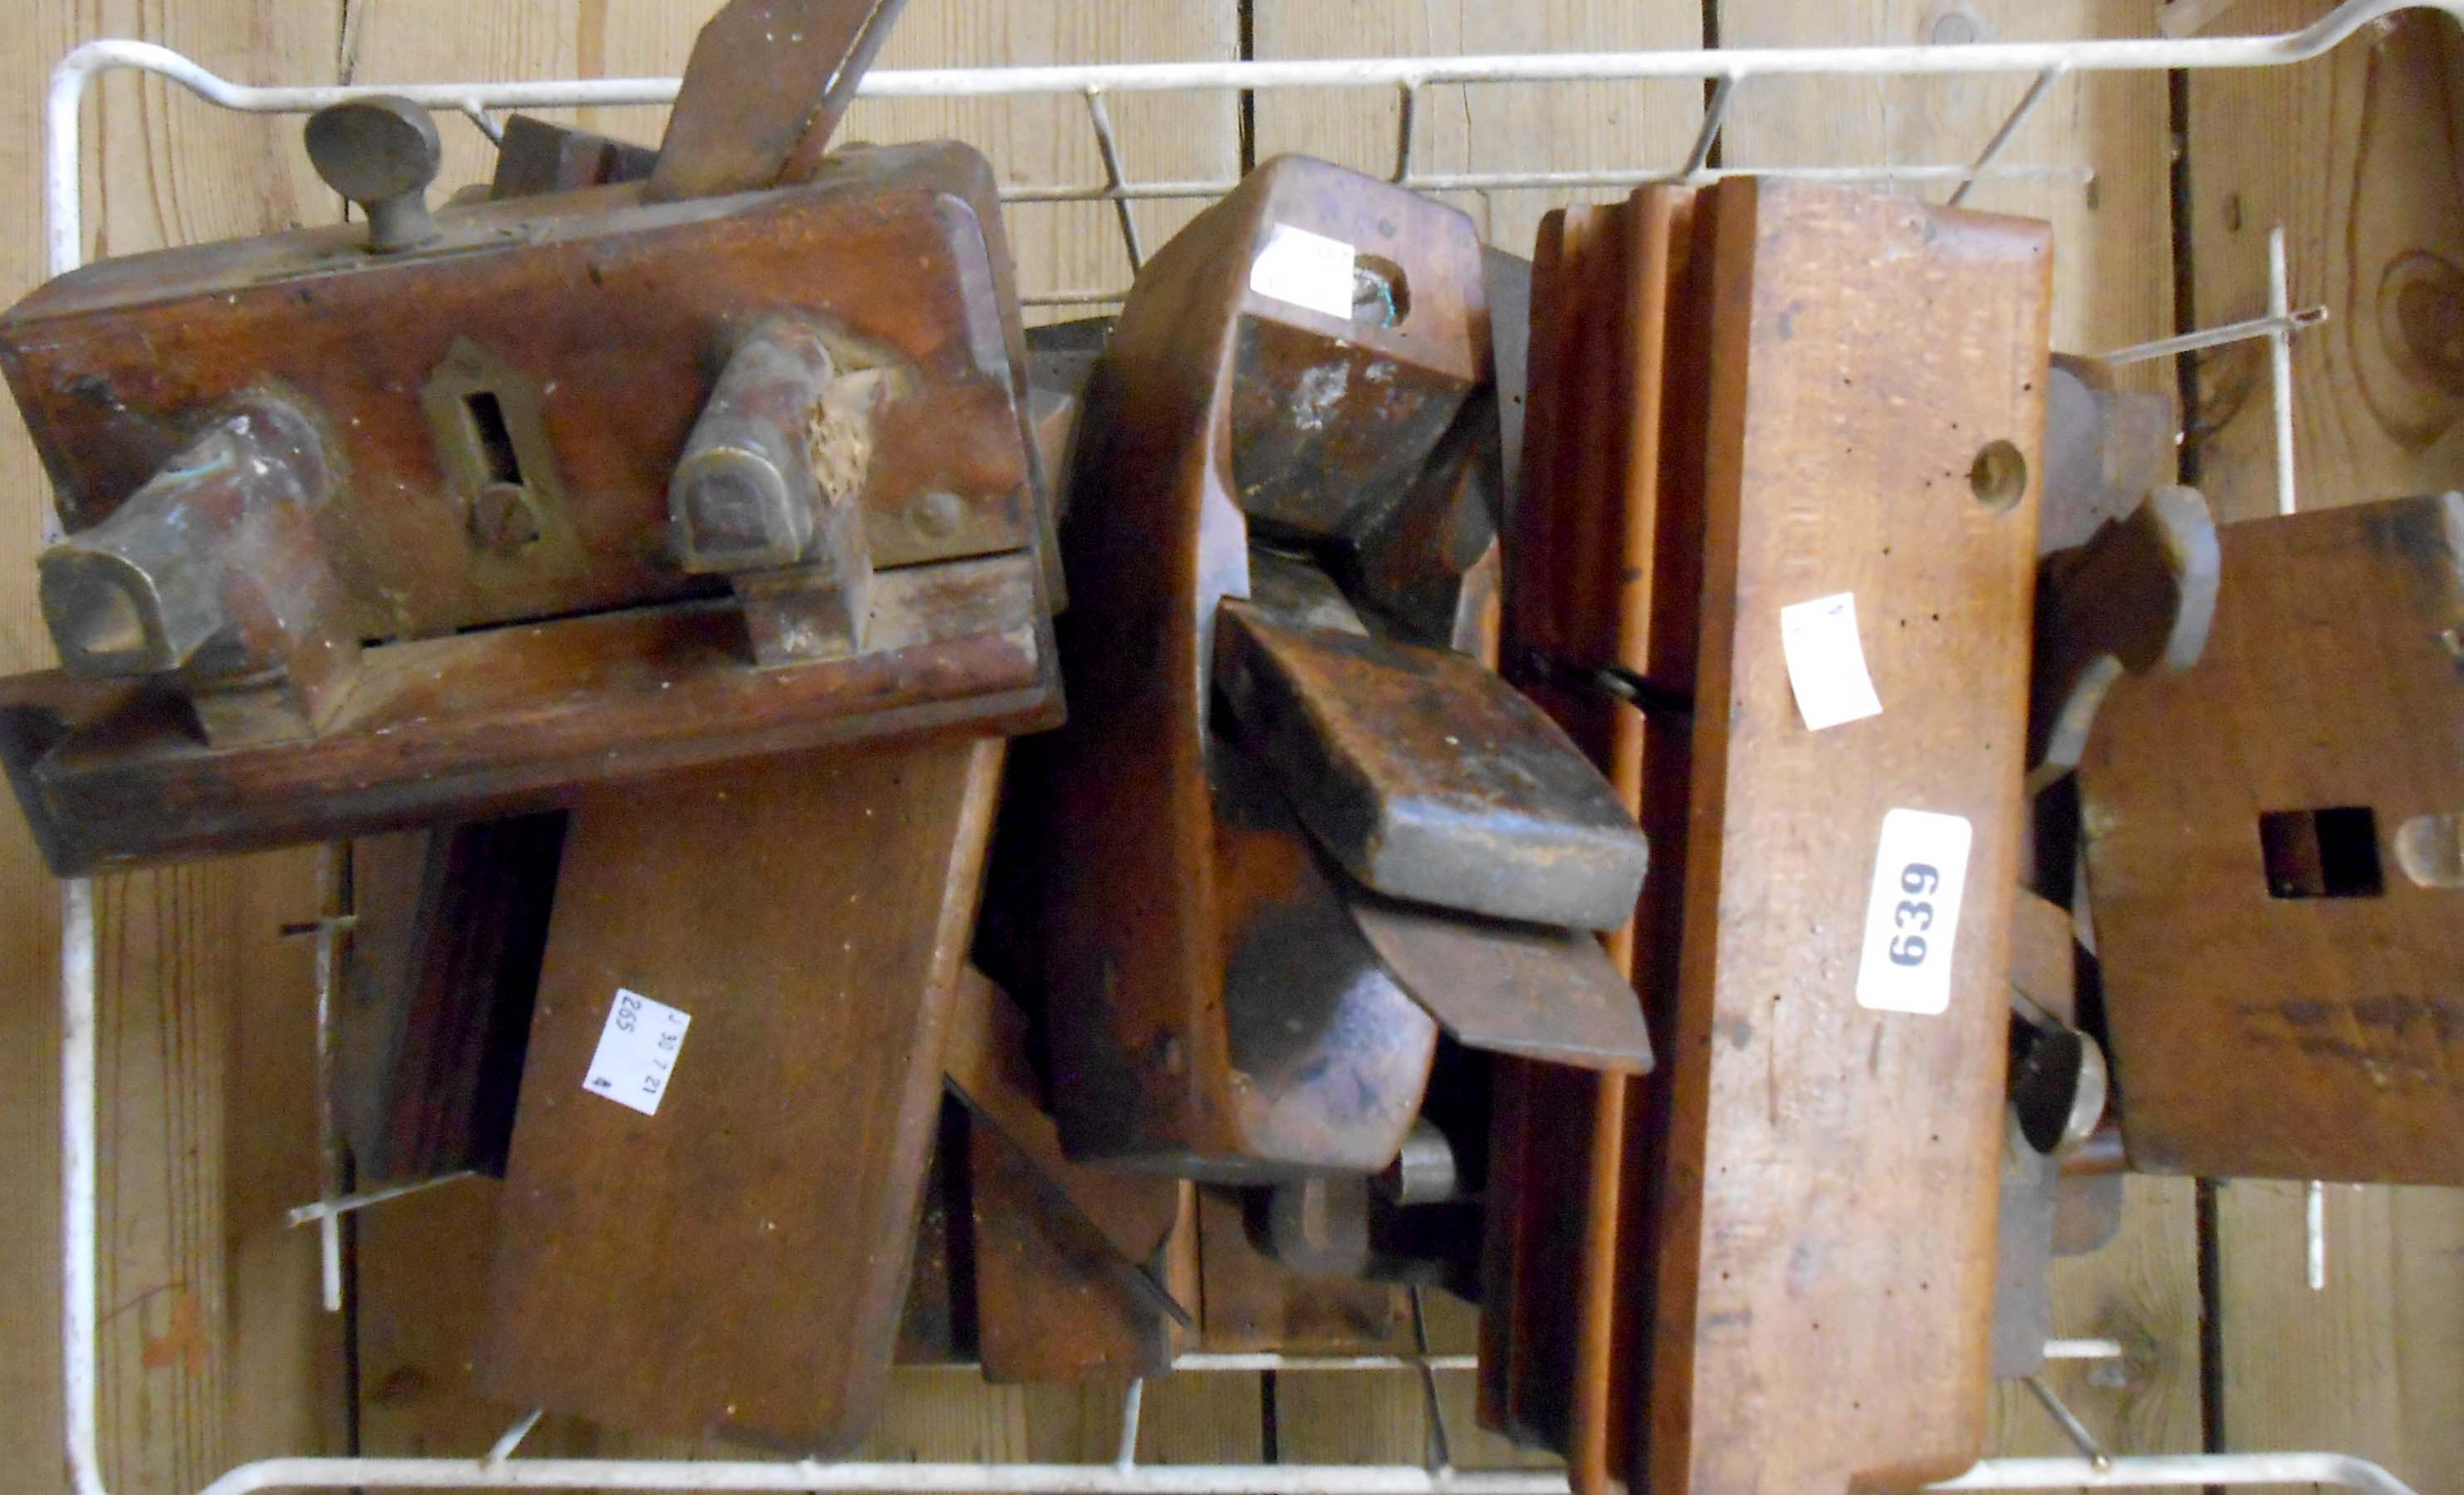 A crate containing assorted moulding and other planes